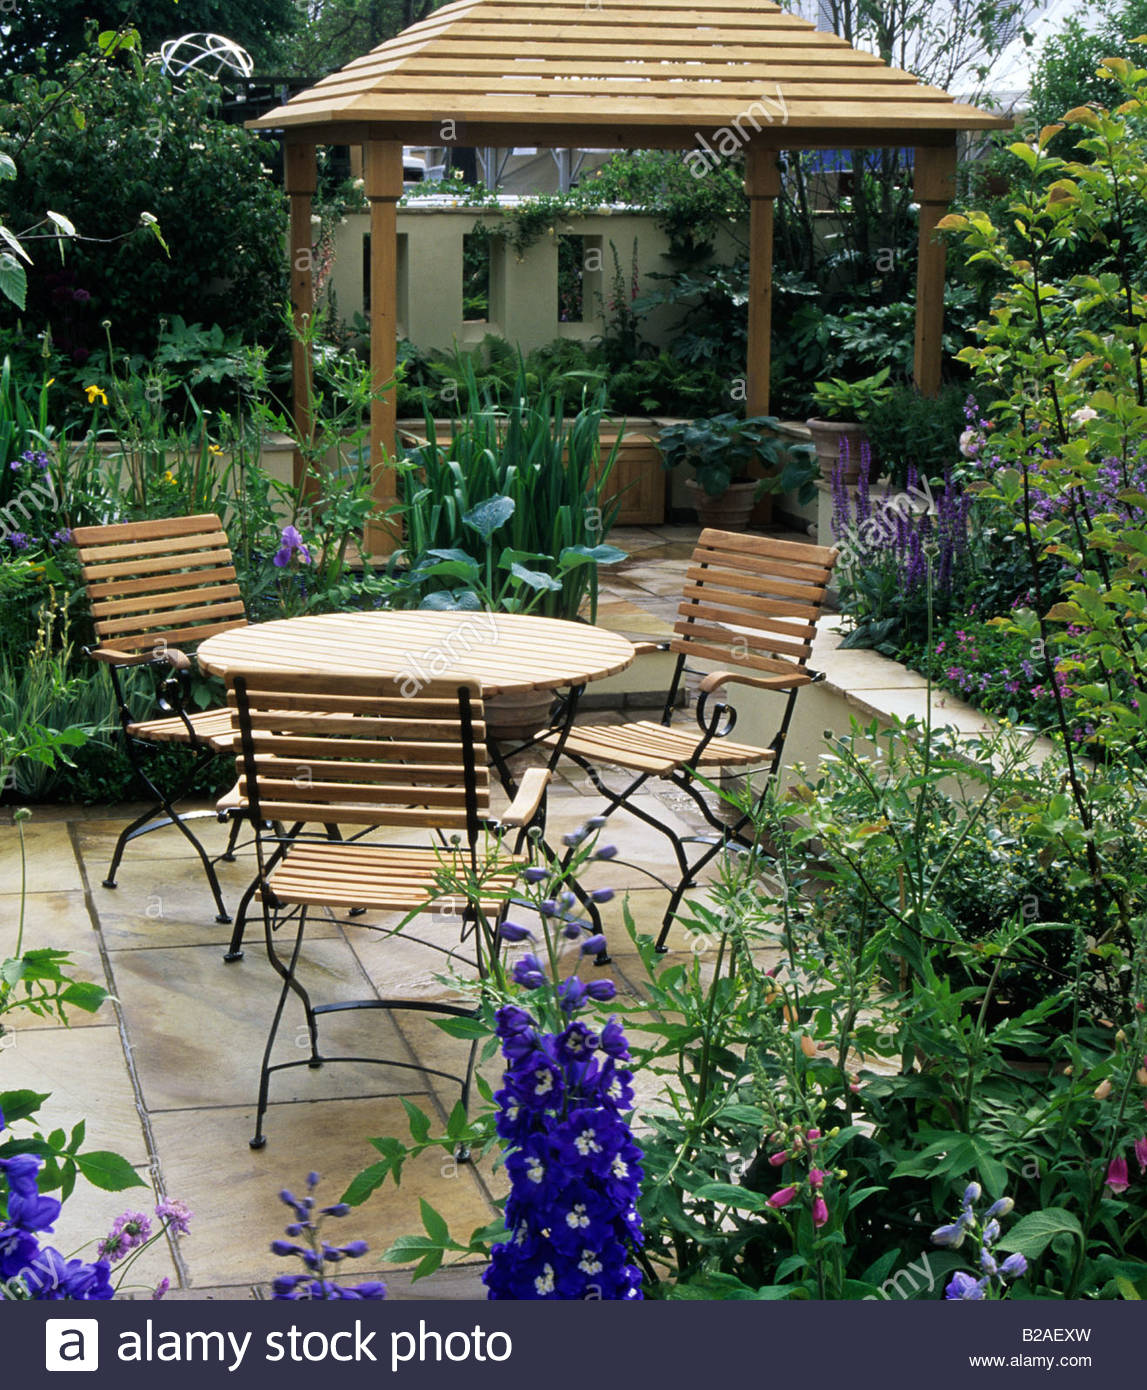 Superbe Chelsea Flower Show 2000 Design Robin Templar Williams Patio Garden With  Table And Chairs